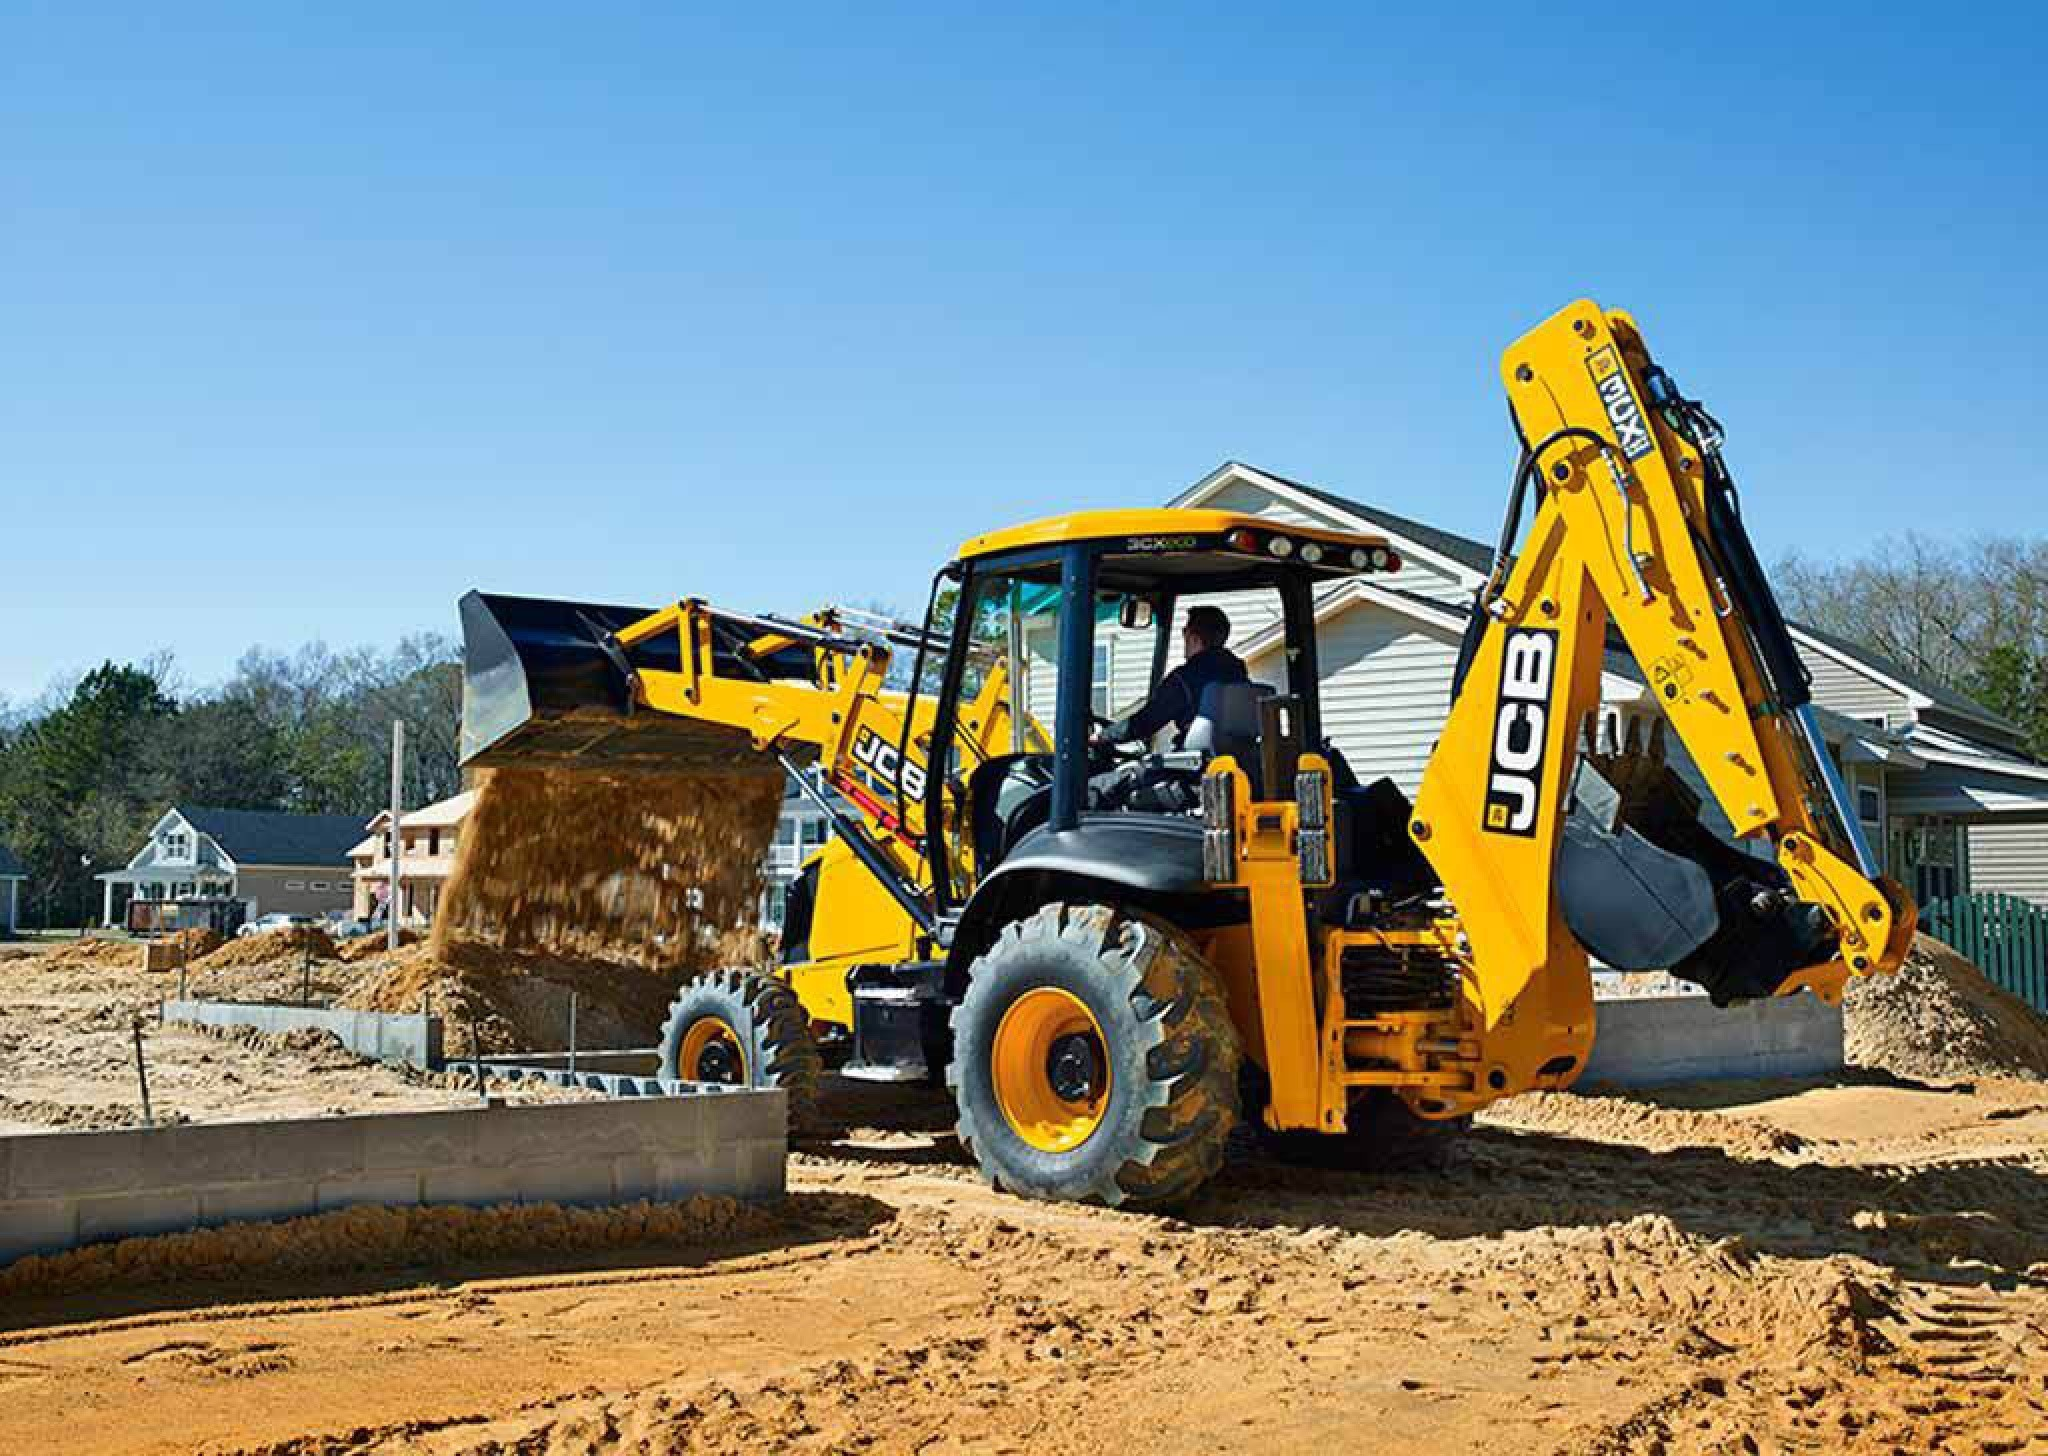 JCB Construction Equipment | OR & WA Sales & Service